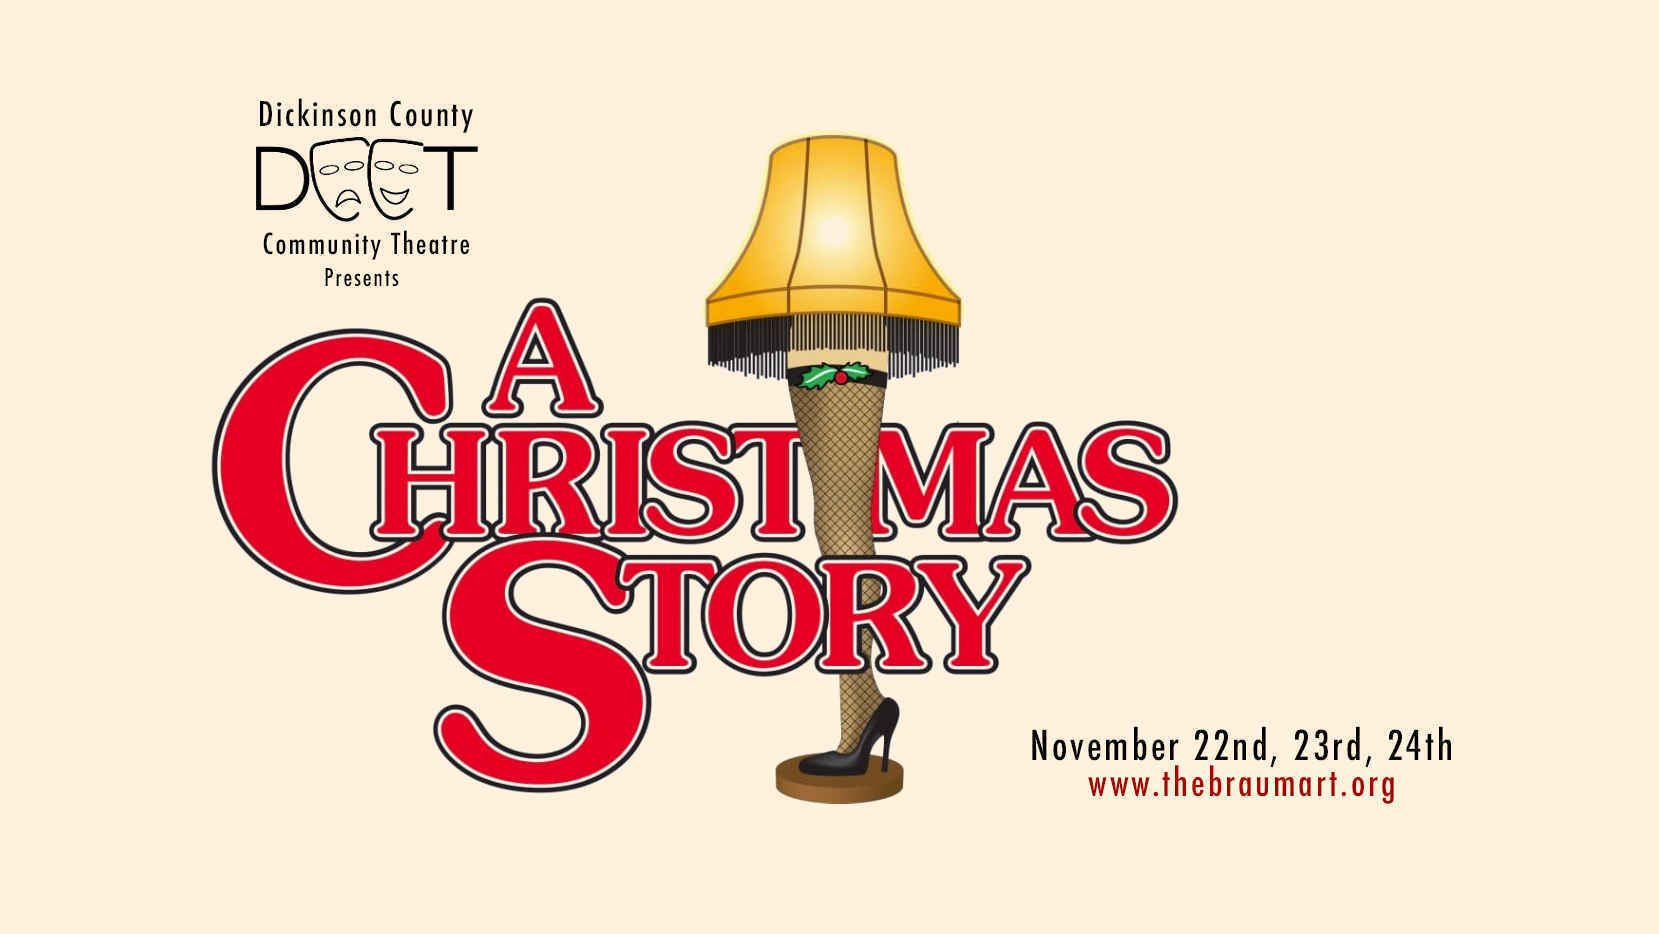 DCCT Presents A Christmas Story (November 23rd Evening) image